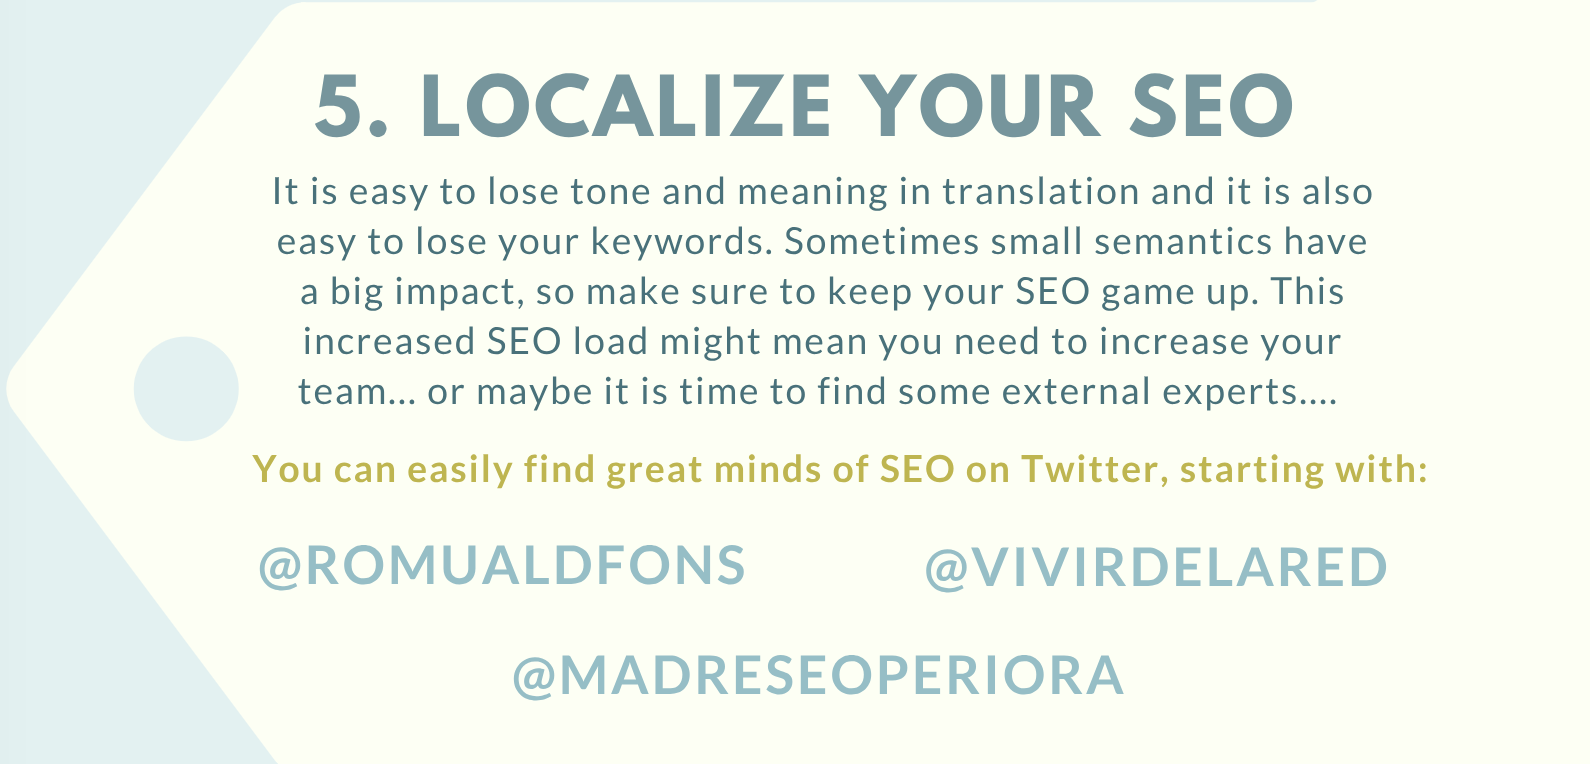 Localize your SEO